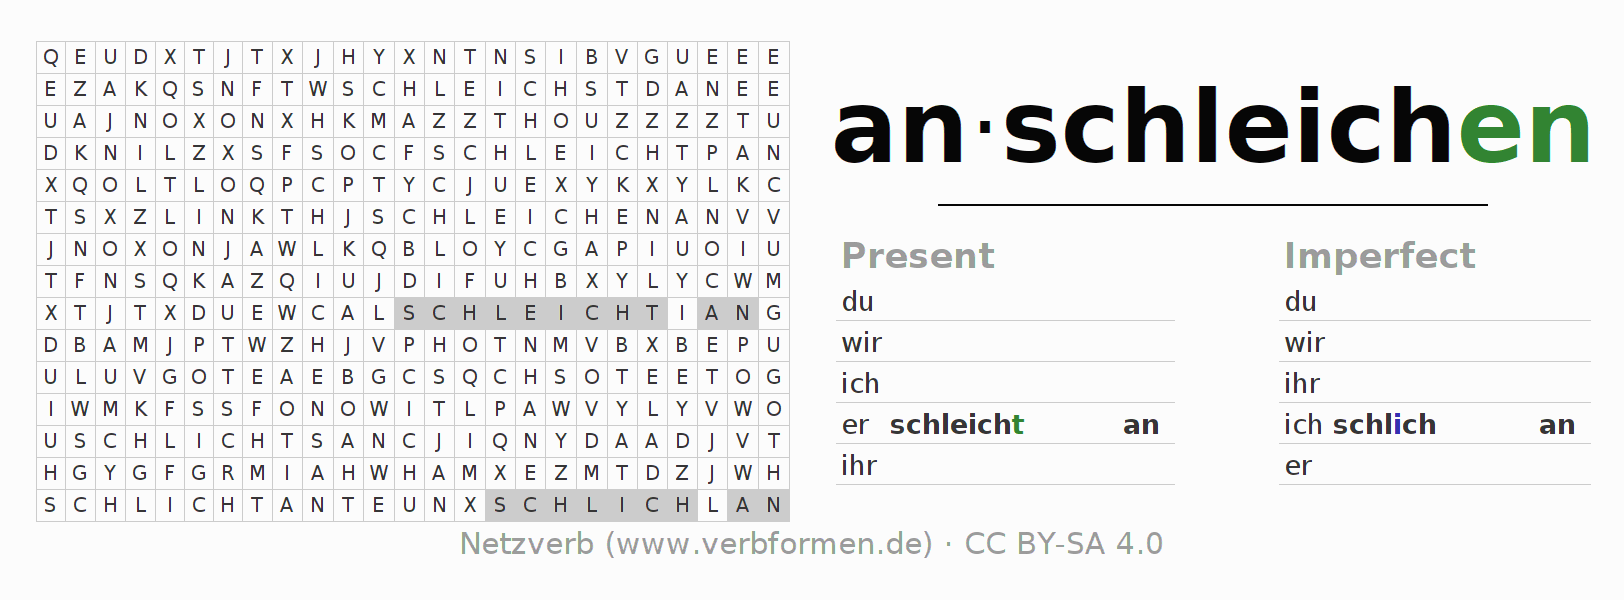 Word search puzzle for the conjugation of the verb anschleichen (ist)